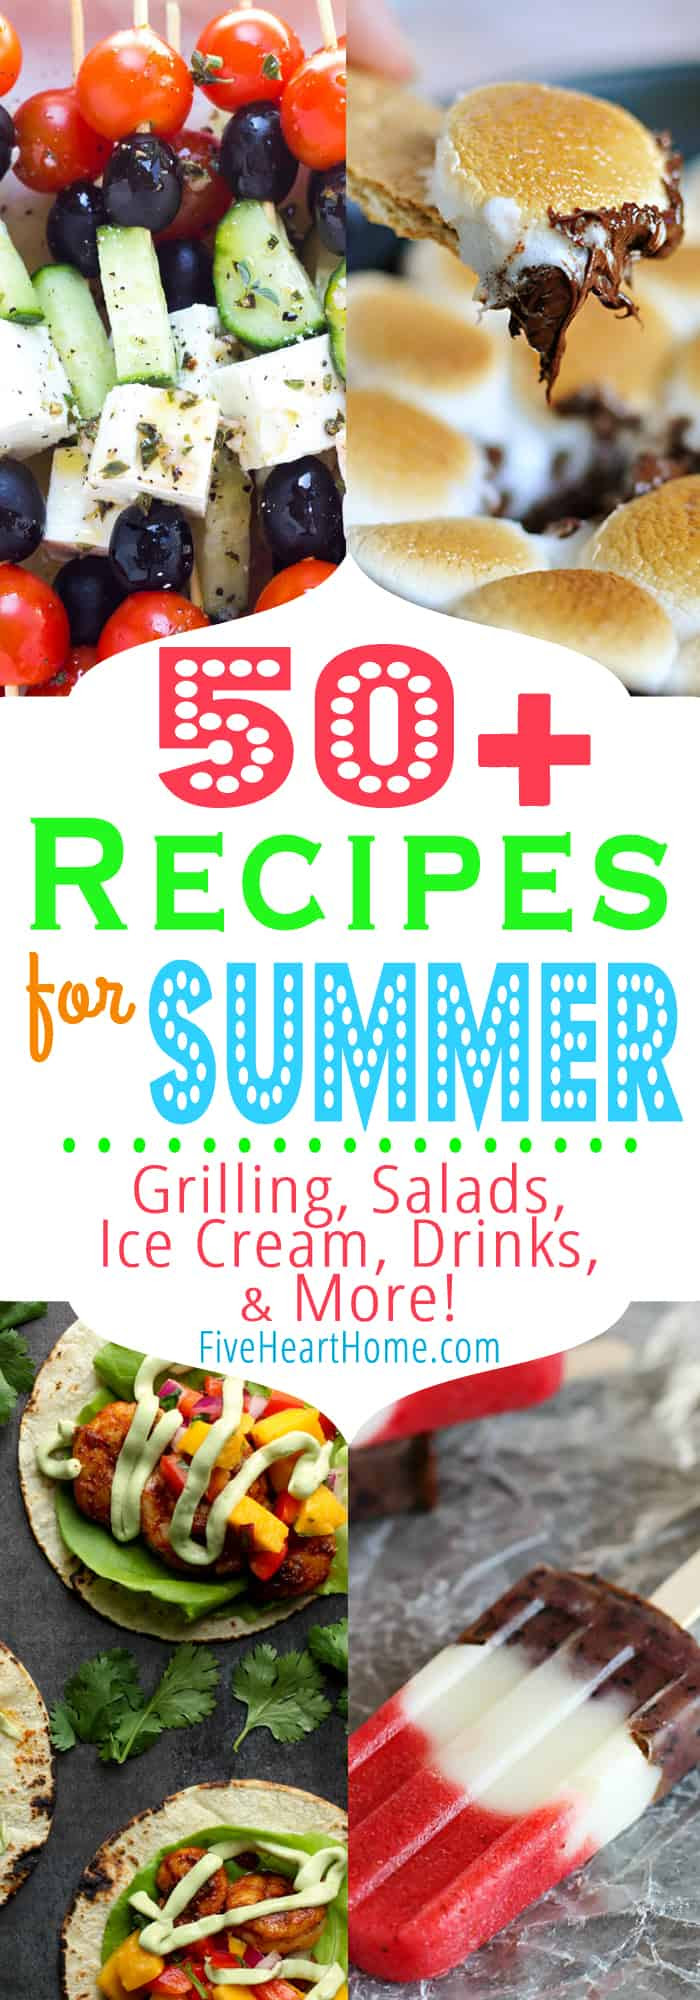 Summer Recipe Round-Up ~ welcome summertime with a mouthwatering collection of recipes, from grilled grub to fruity salads to icy treats to refreshing beverages...and more! | FiveHeartHome.com